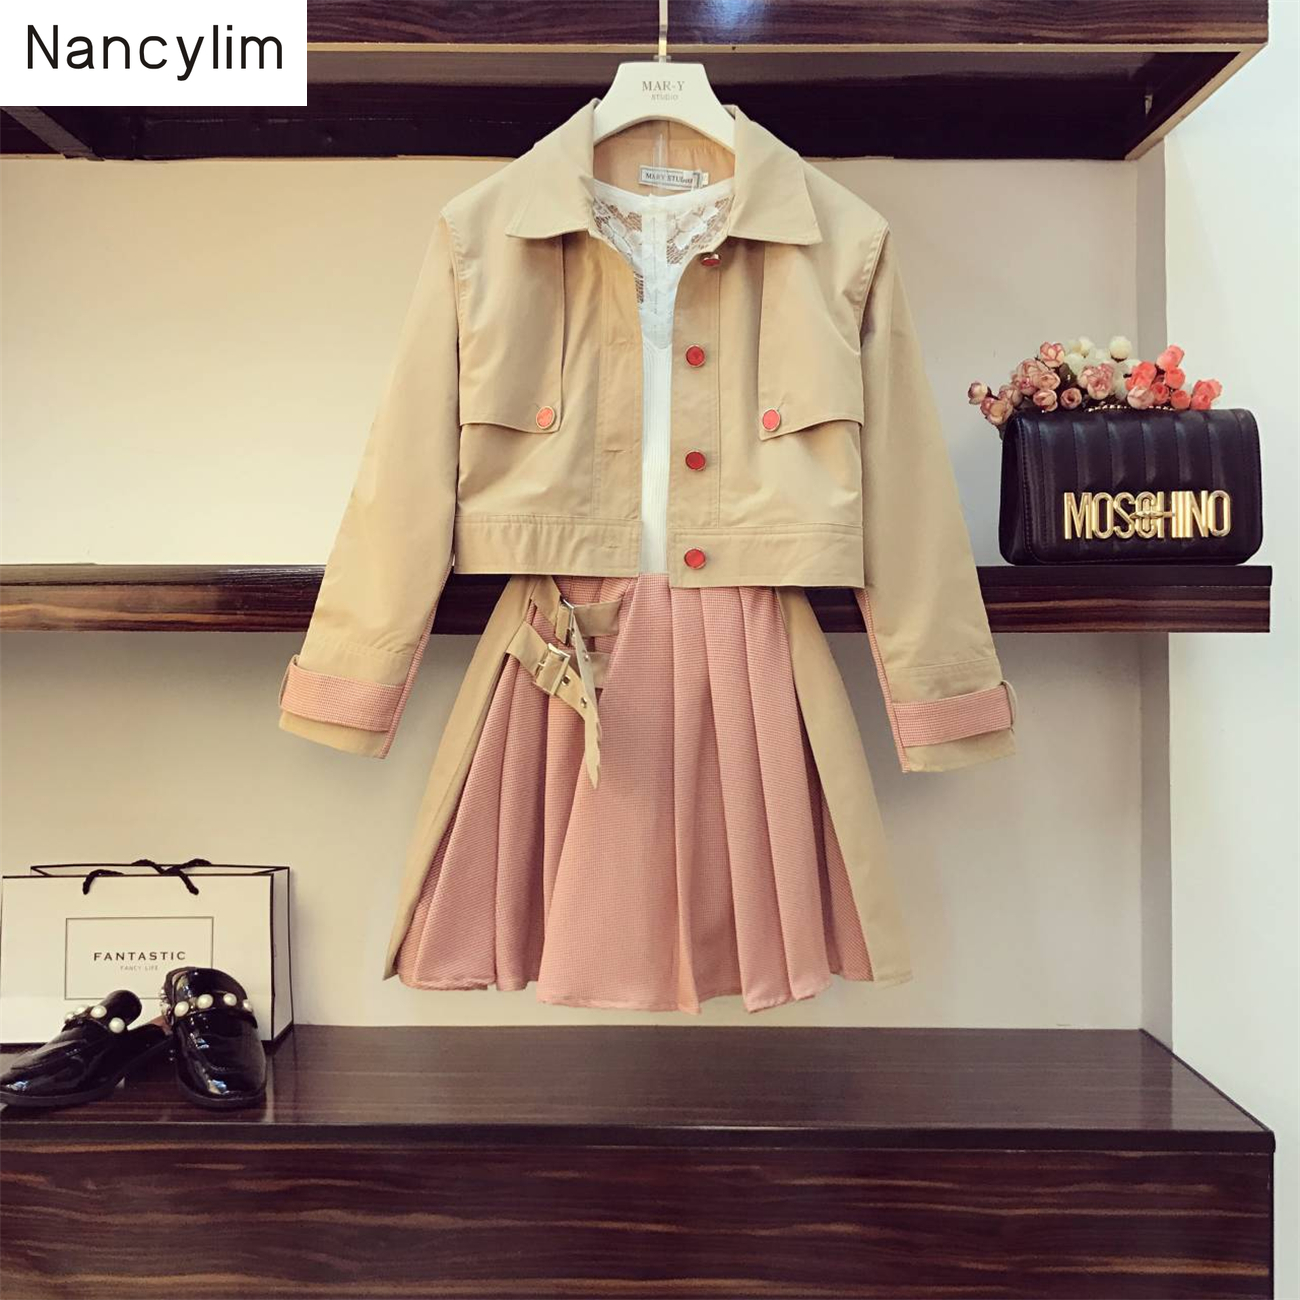 2piece Sets Women New Loose Short Jacket + Irregular Pleated Skirt Girl Lady's Temperament Skirts Set Femme Streetwear Outfits